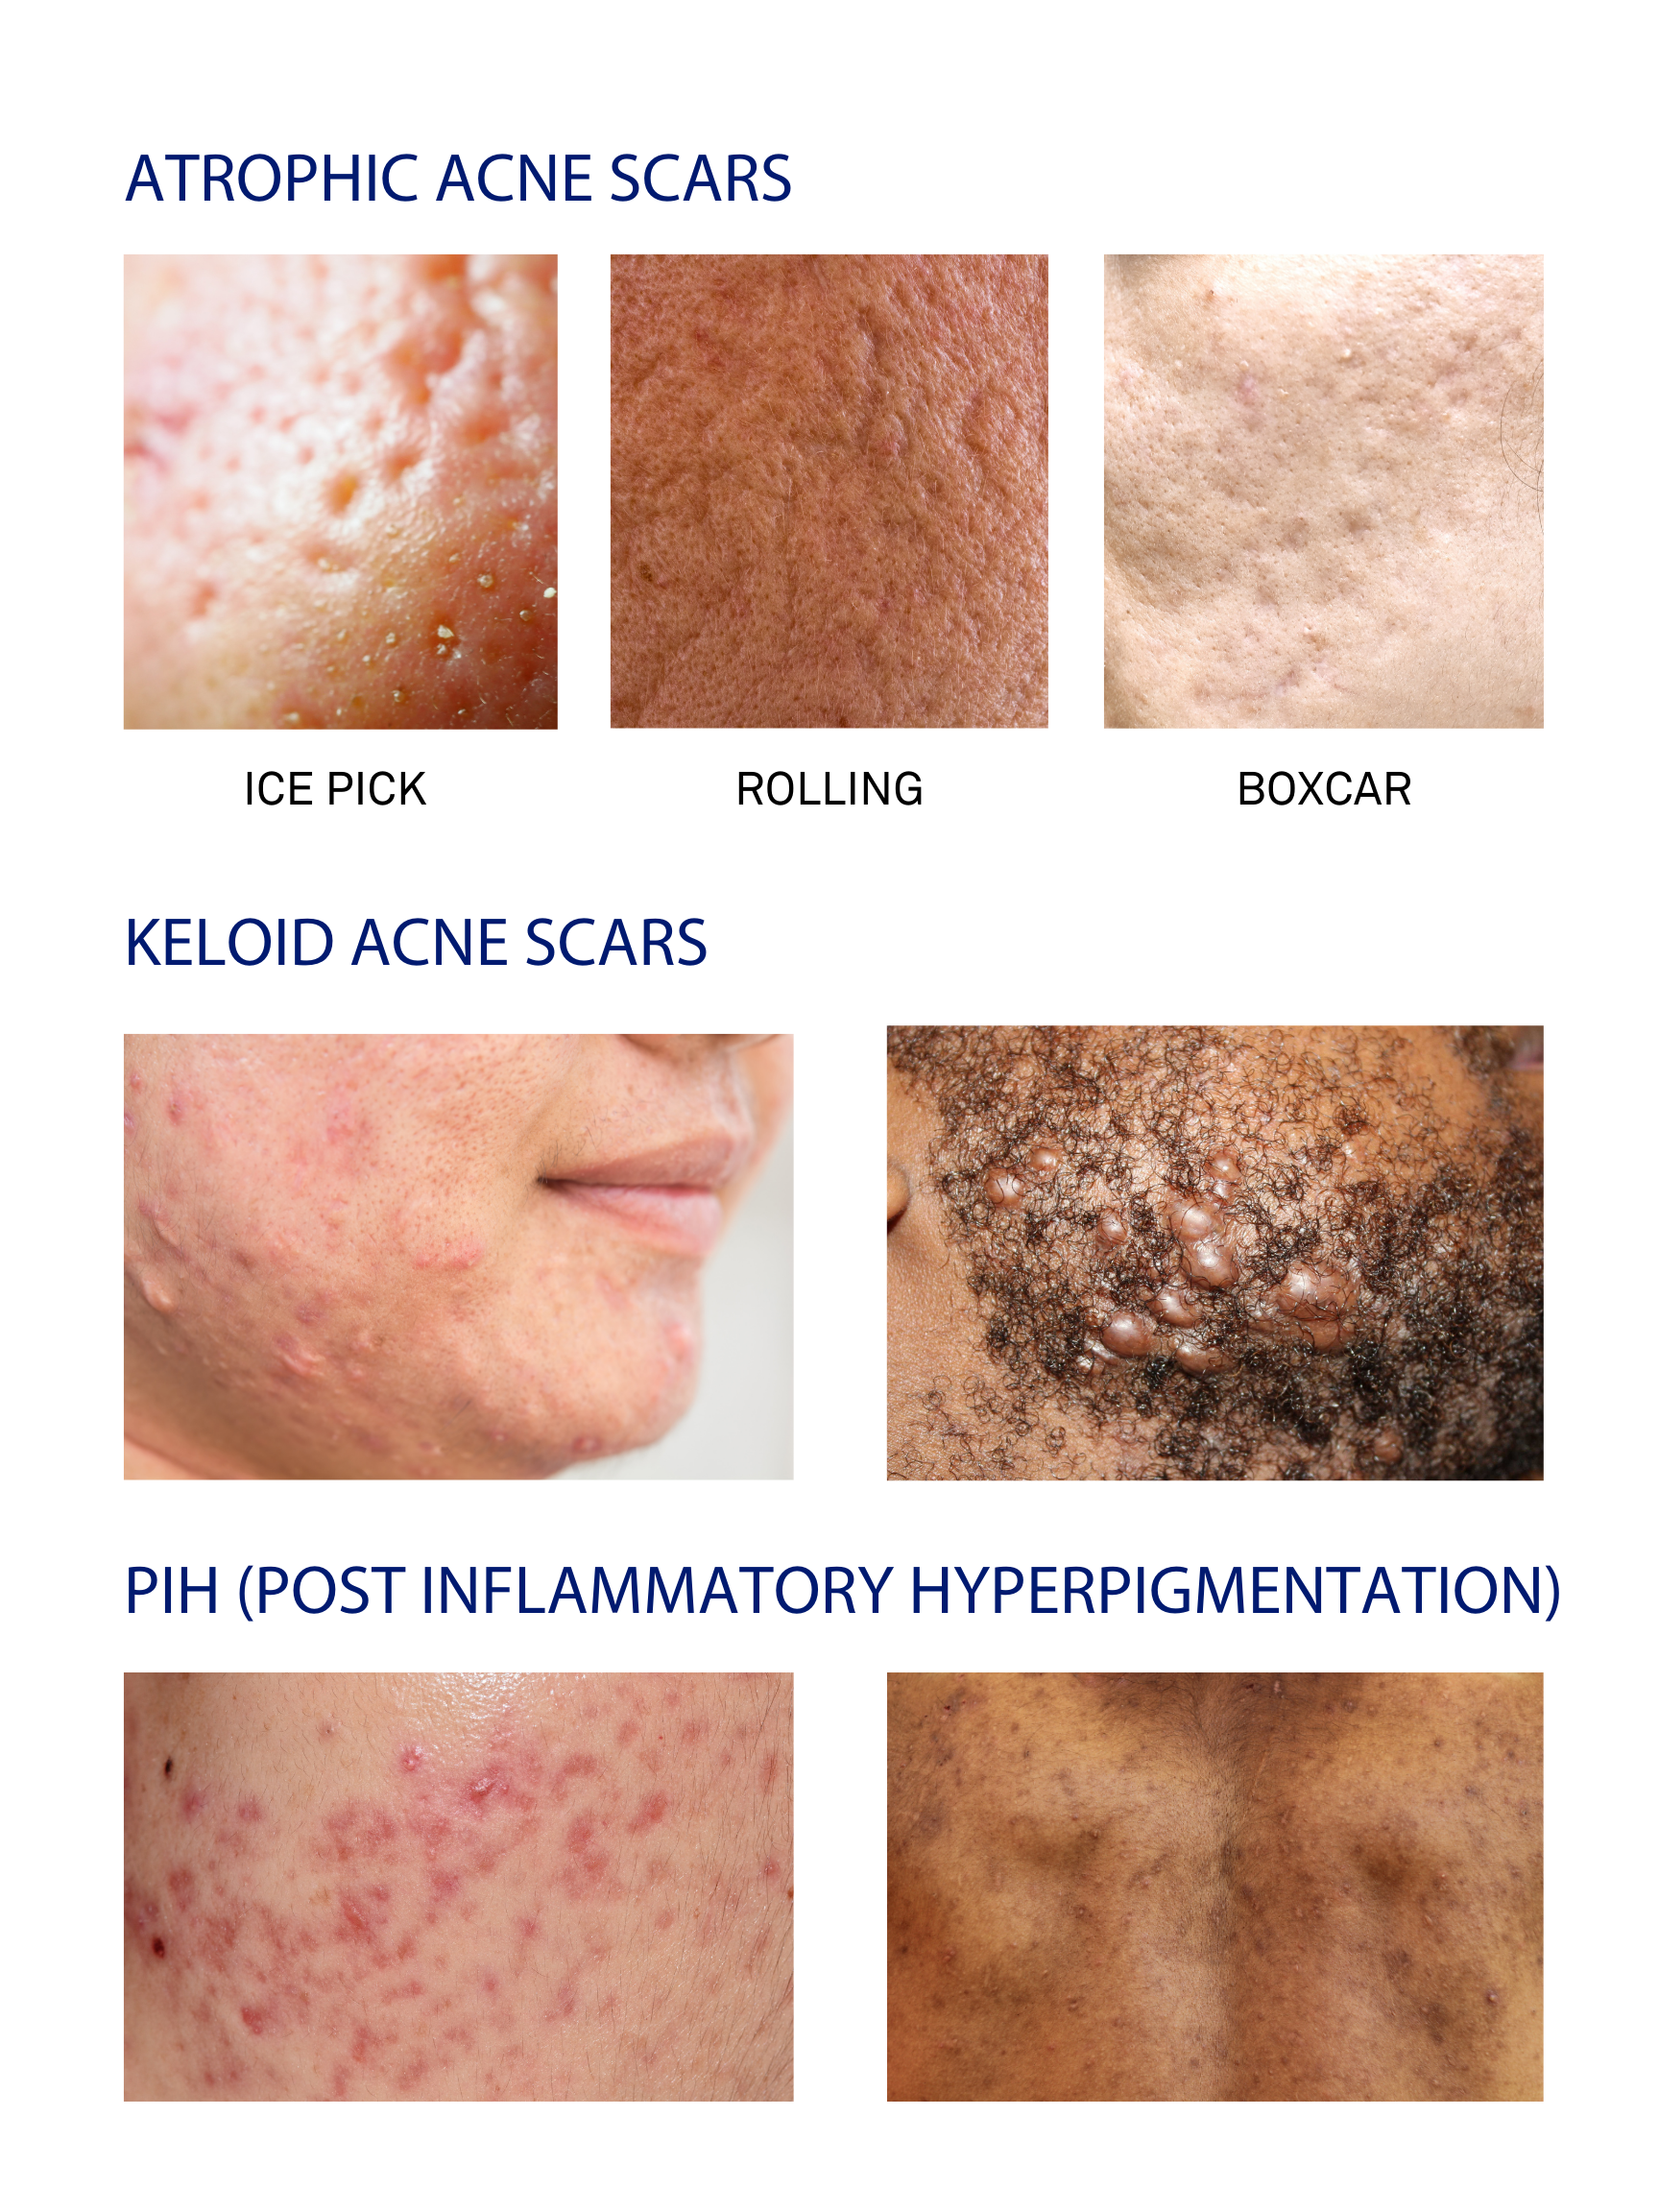 infographic showing what different kinds of acne scars look like